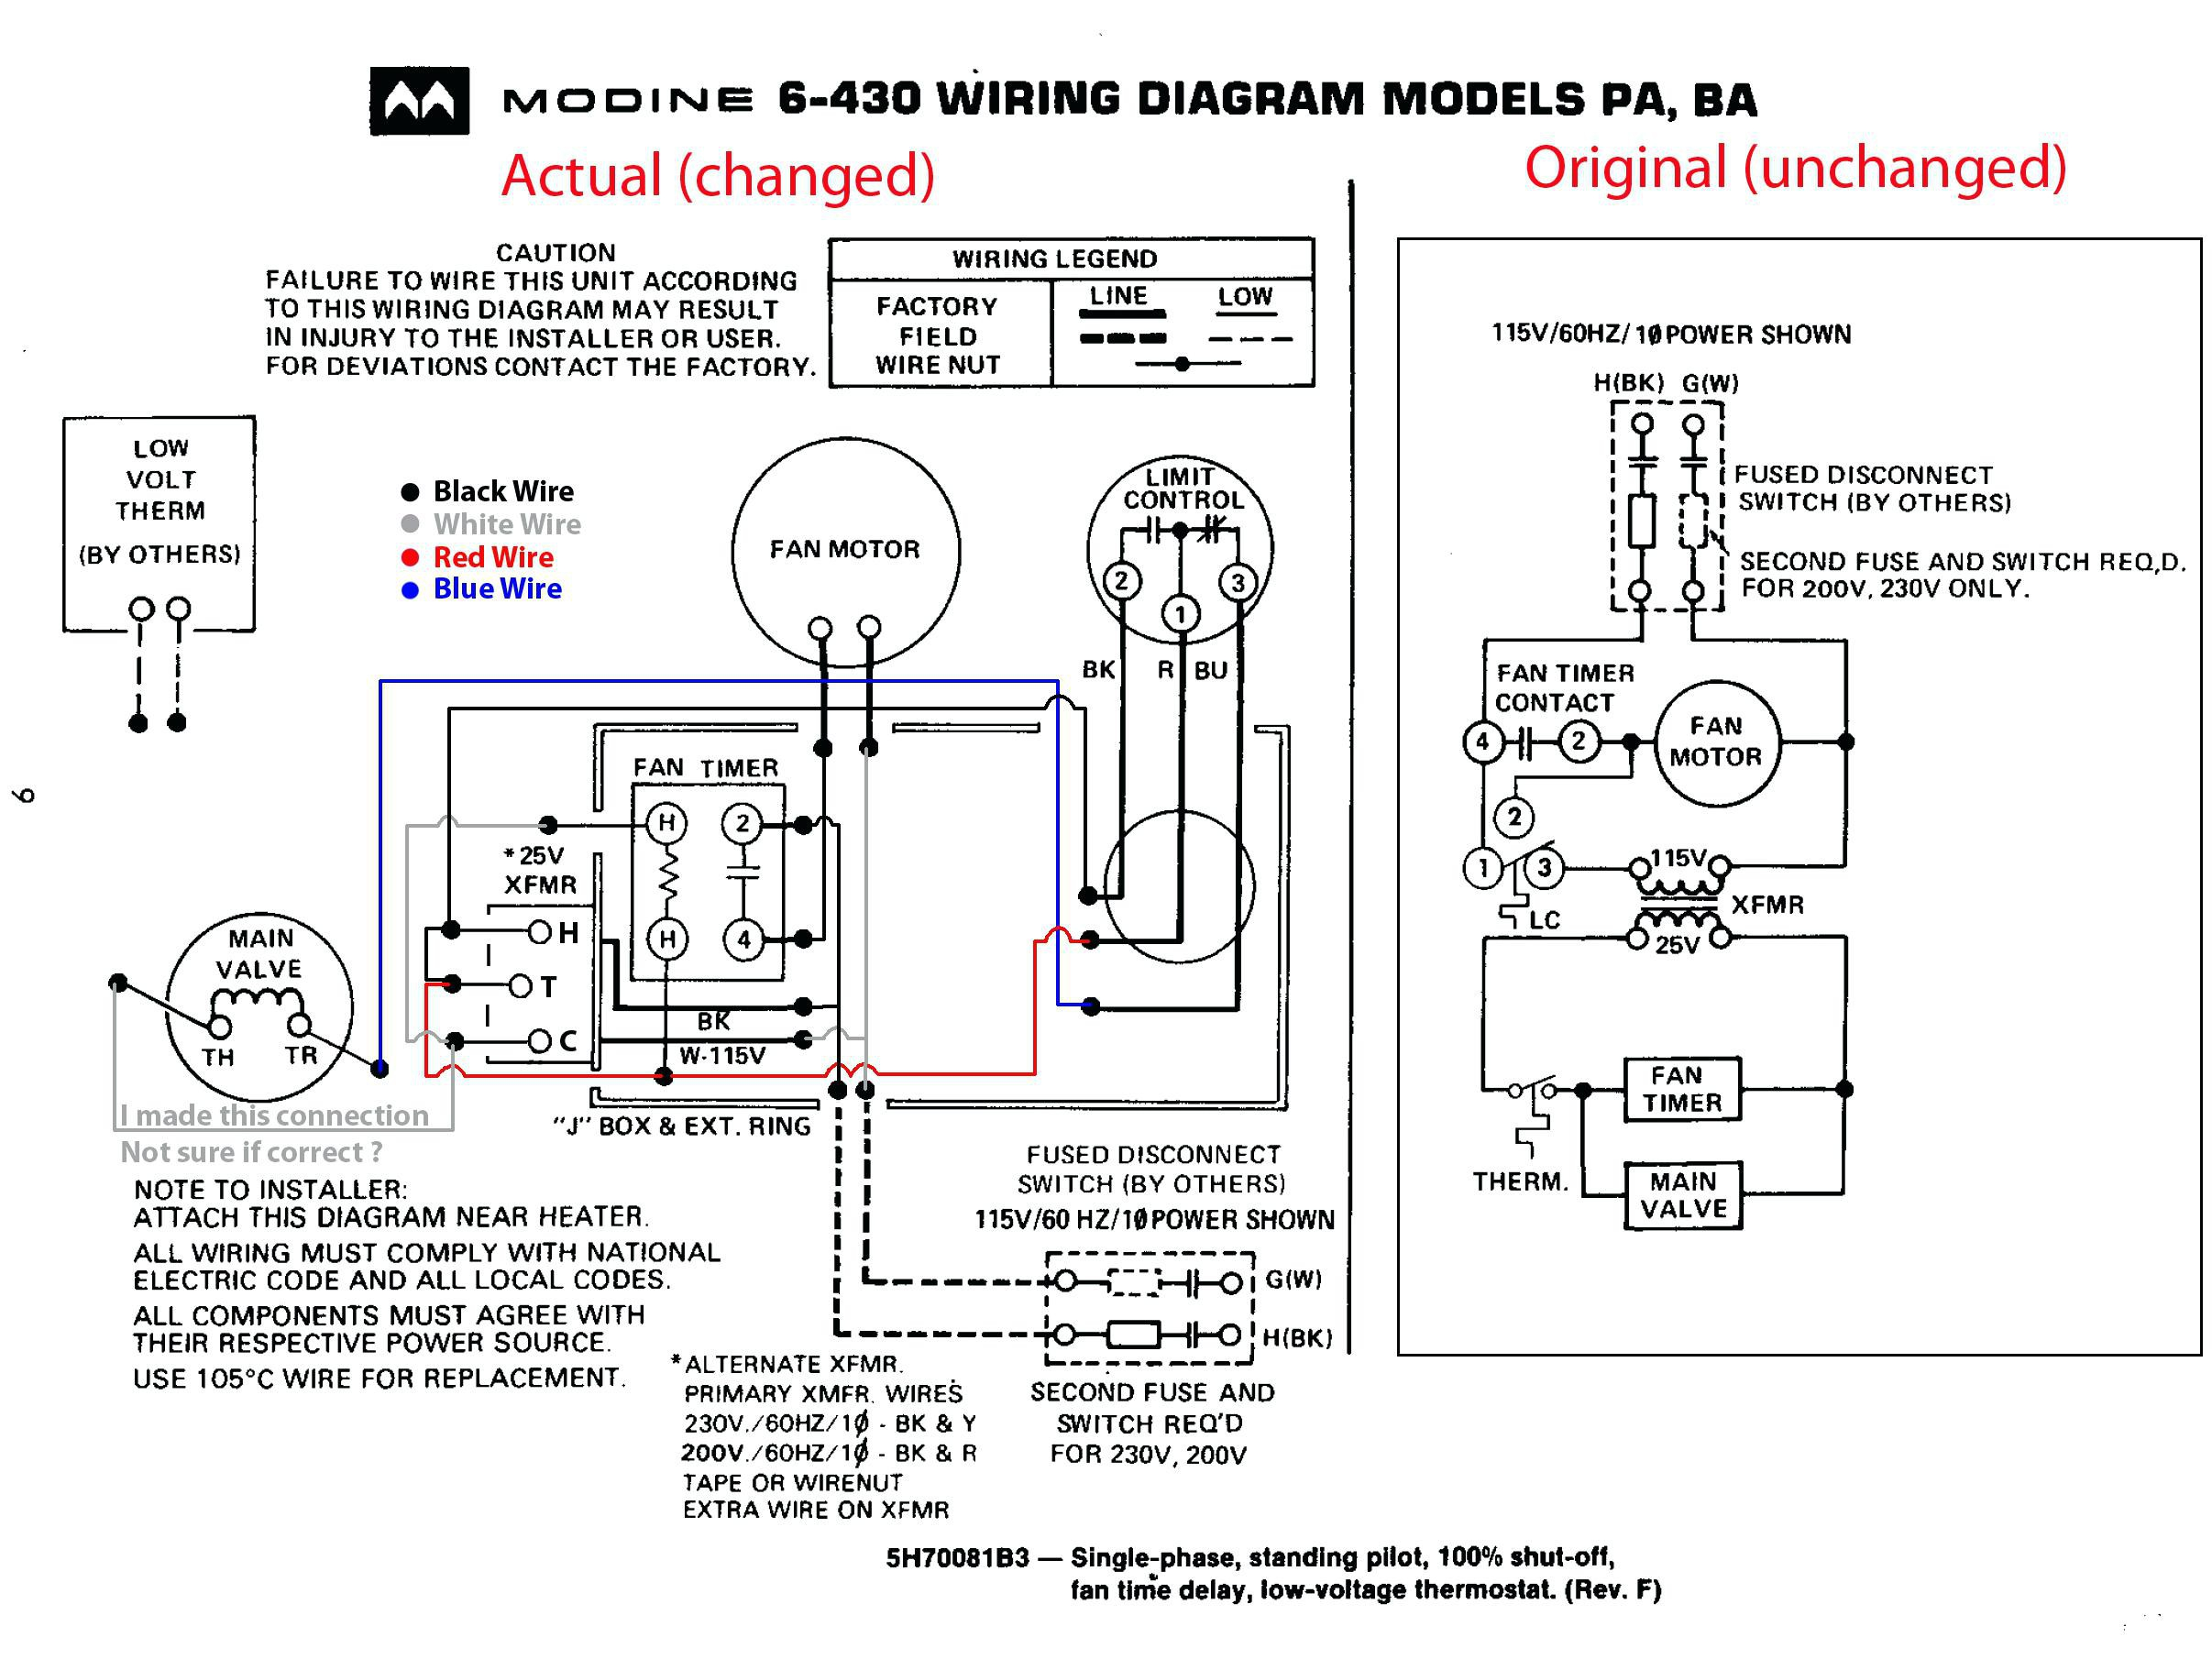 Modine Pa75ab Wiring Diagram Sample Wiring Collection